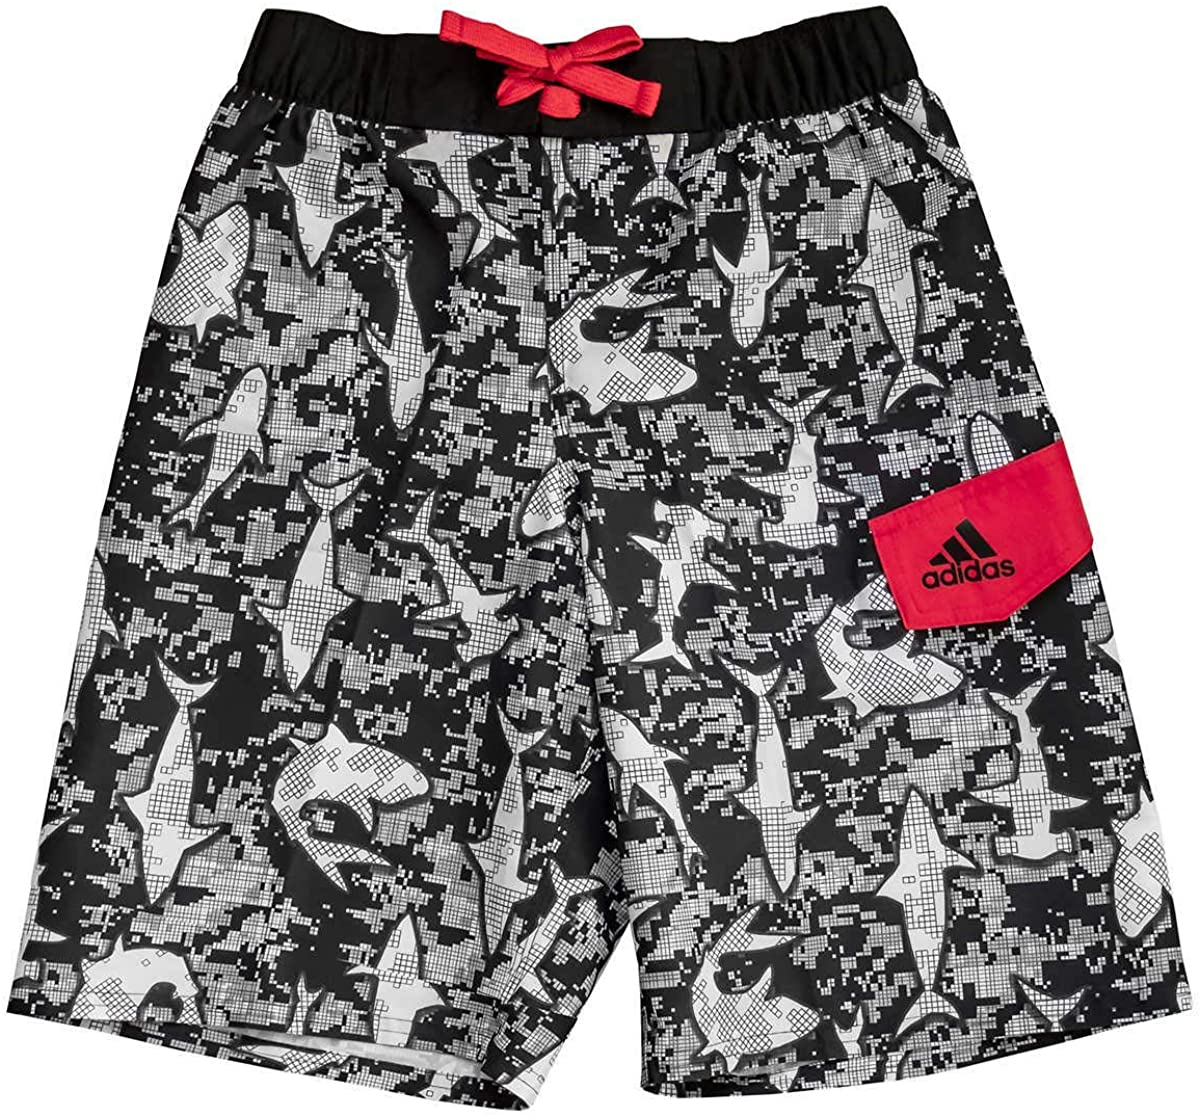 adidas Boys Swim Trunks Boardshorts